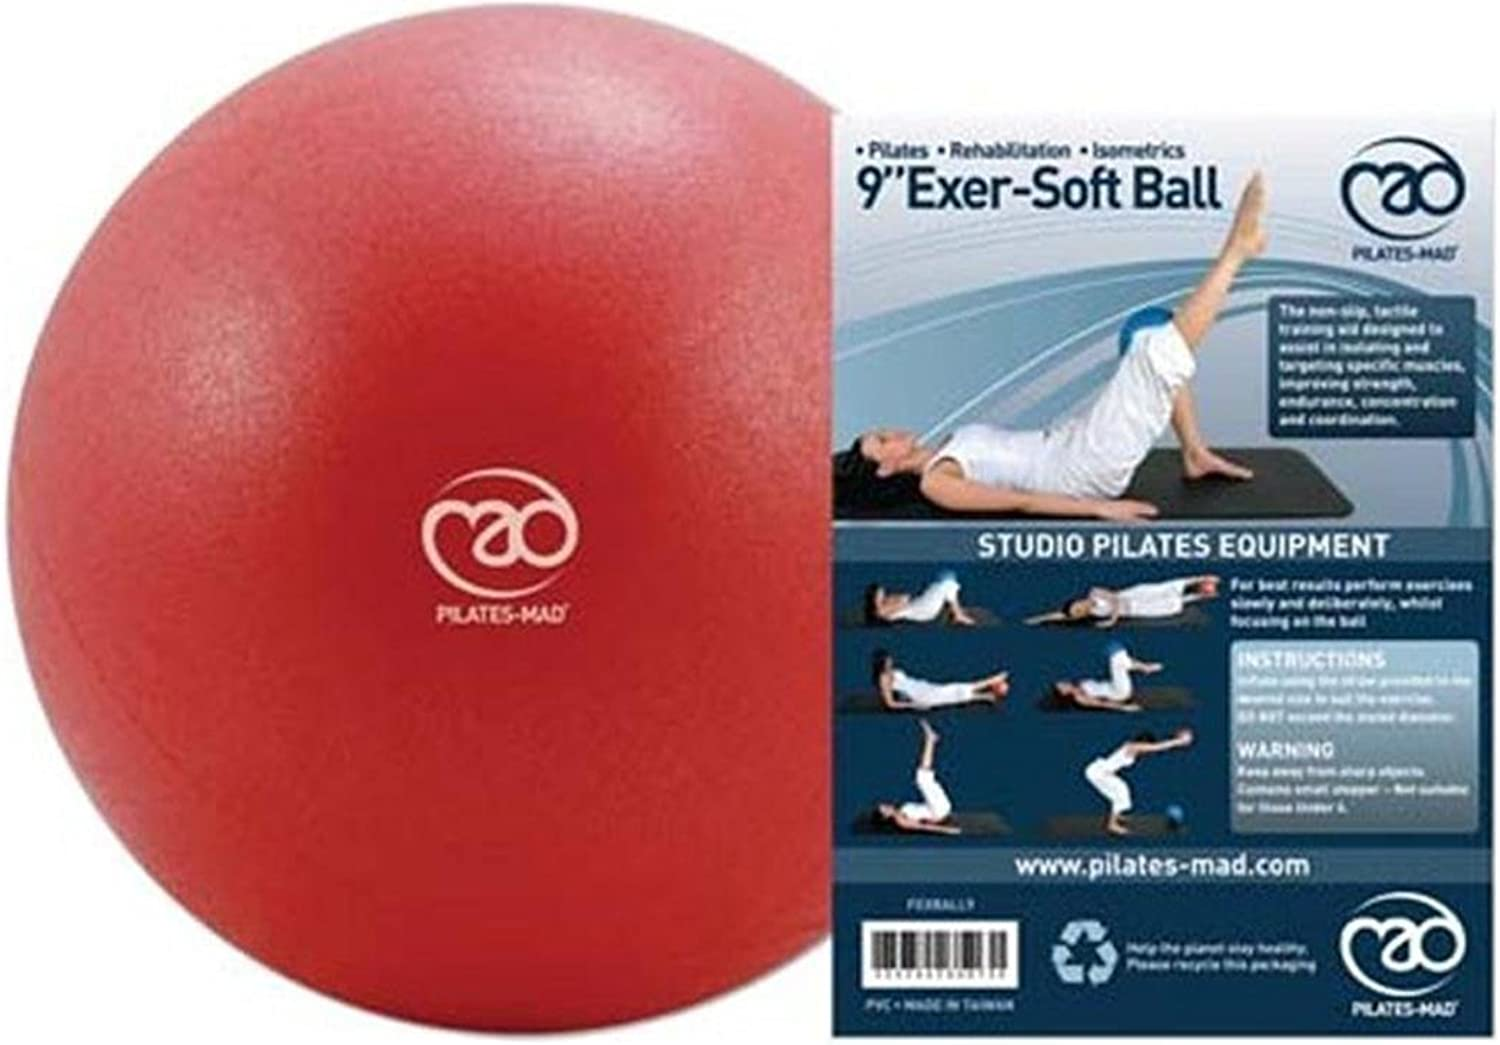 FitnessMad Exercise Yoga Core Strength Pelvic & Pilates Workout ExerSoft Ball